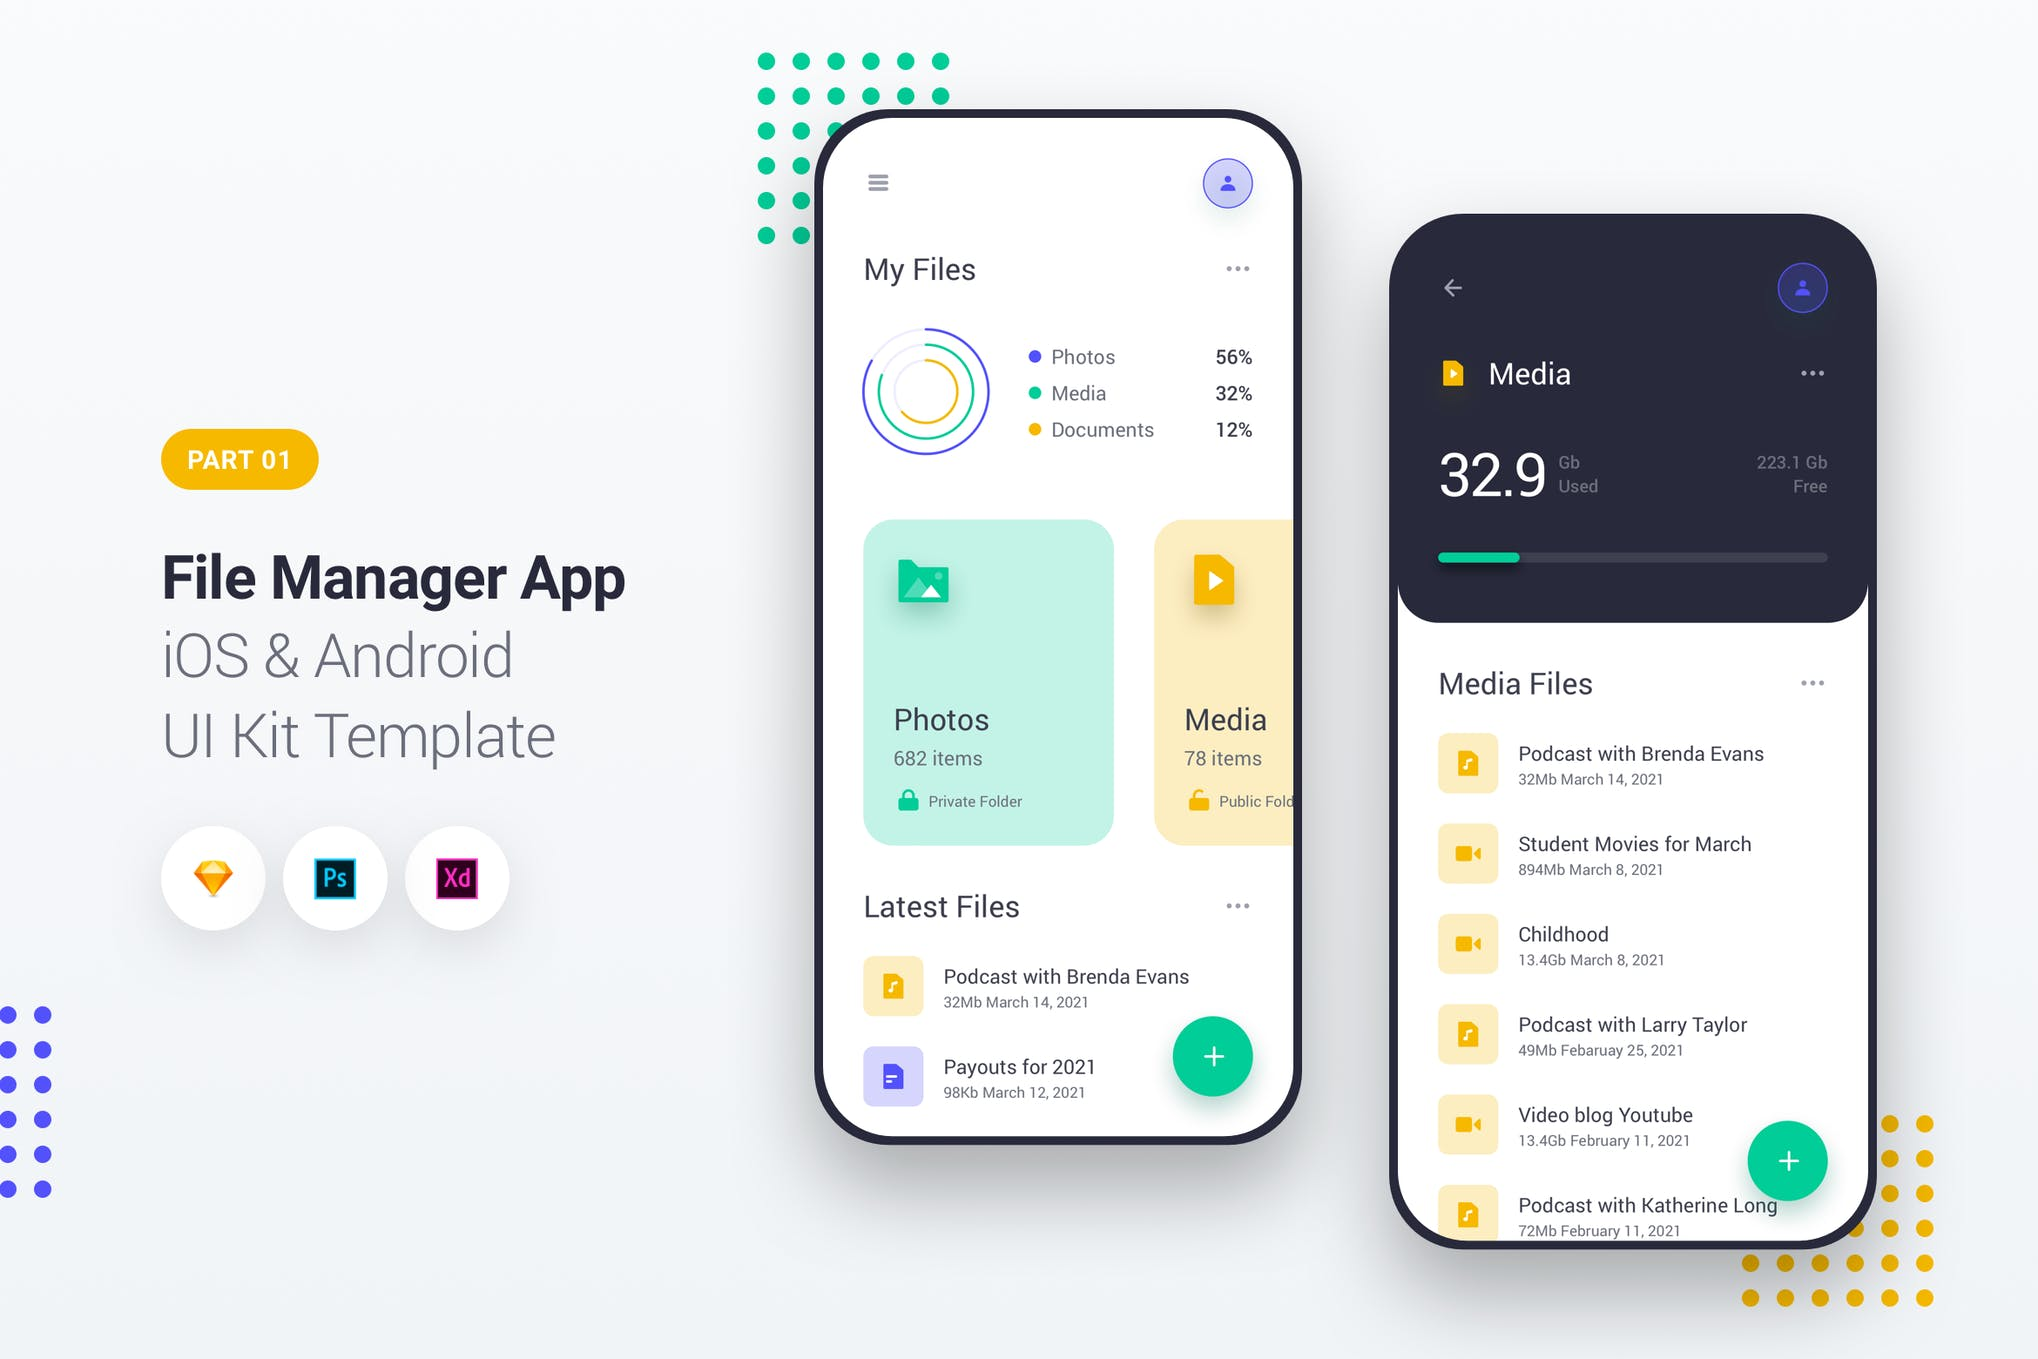 Profiles - Done UI Kit iOS & Android UX Template by panoplystore on